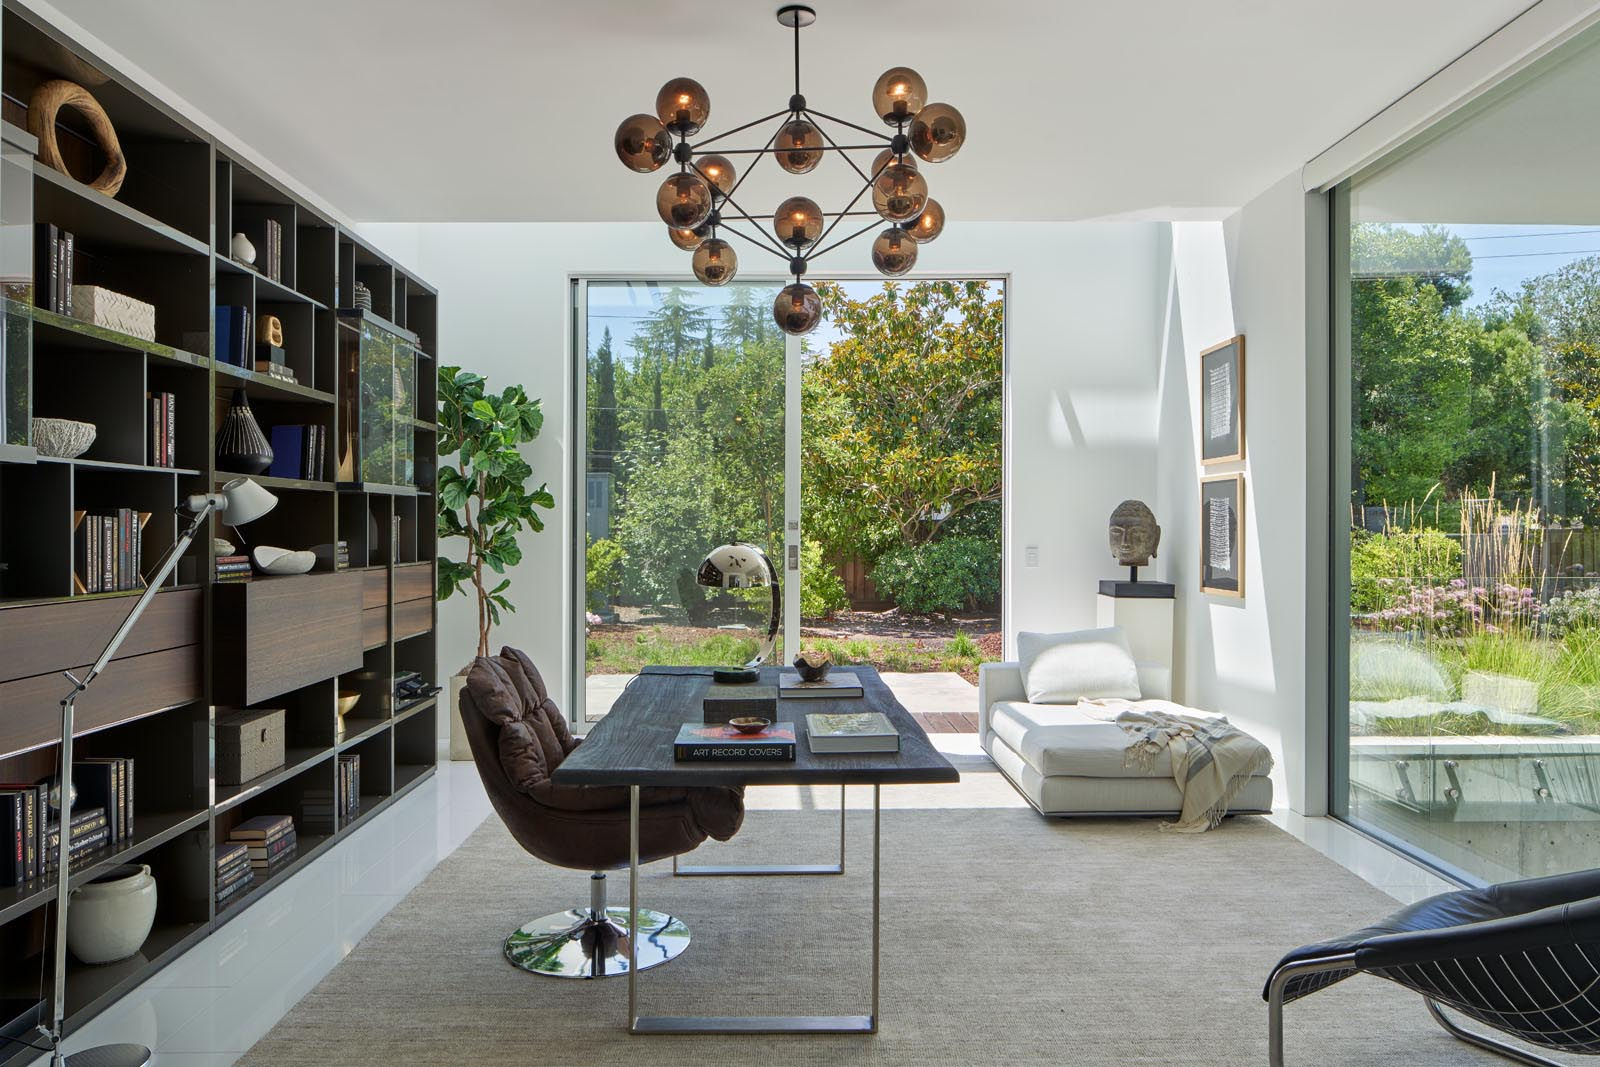 In a home office, a dark bookshelf provides a backdrop for the desk, while a sculptural light fixture adds interest to the room.